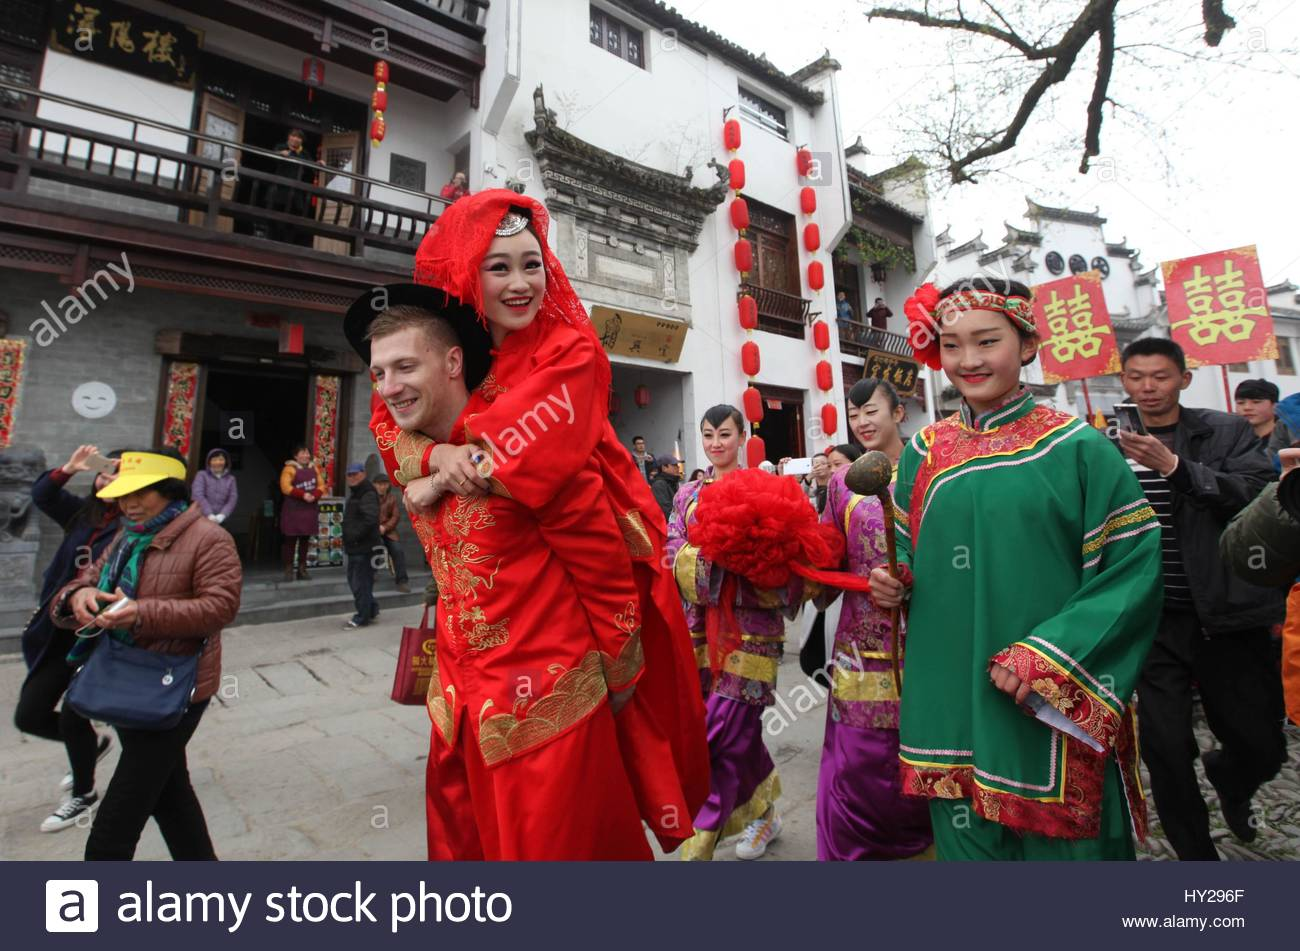 A Traditional Chinese Wedding Ceremony Is Held For The Groom From Ukraine And Bride